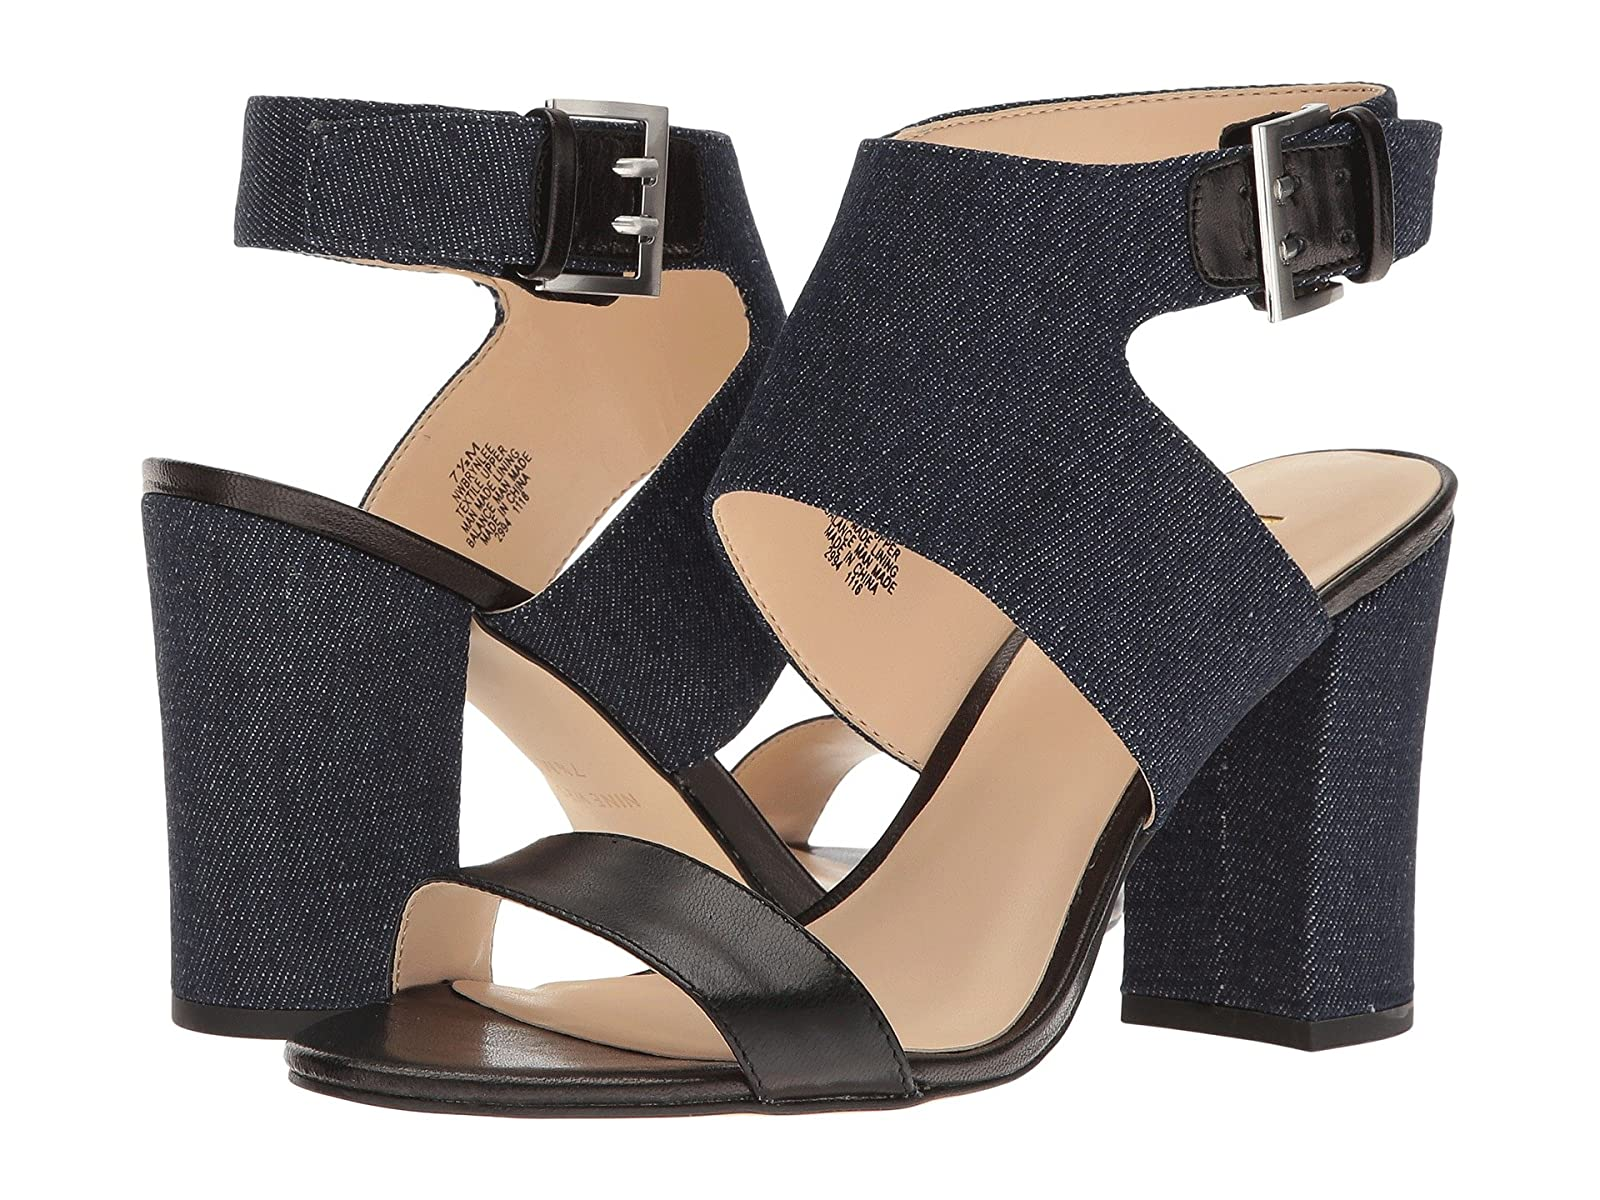 Nine West Brynlee 2Cheap and distinctive eye-catching shoes